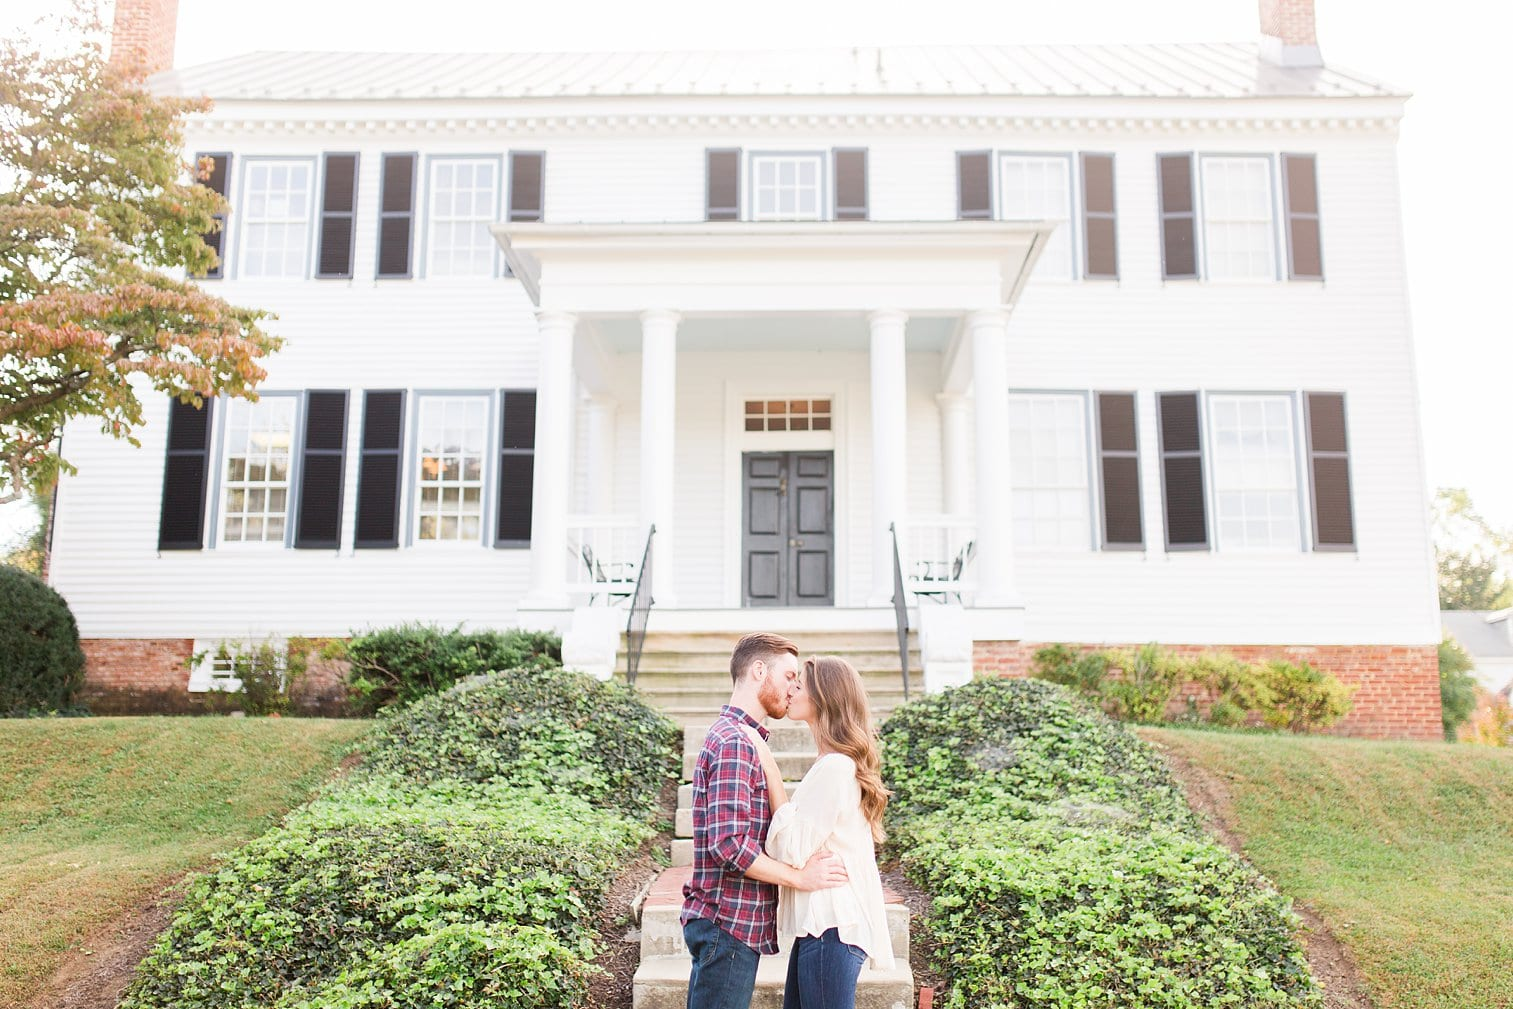 Fredericksburg Engagement Photos Megan Kelsey Photography Virginia Wedding Photographer-10.jpg